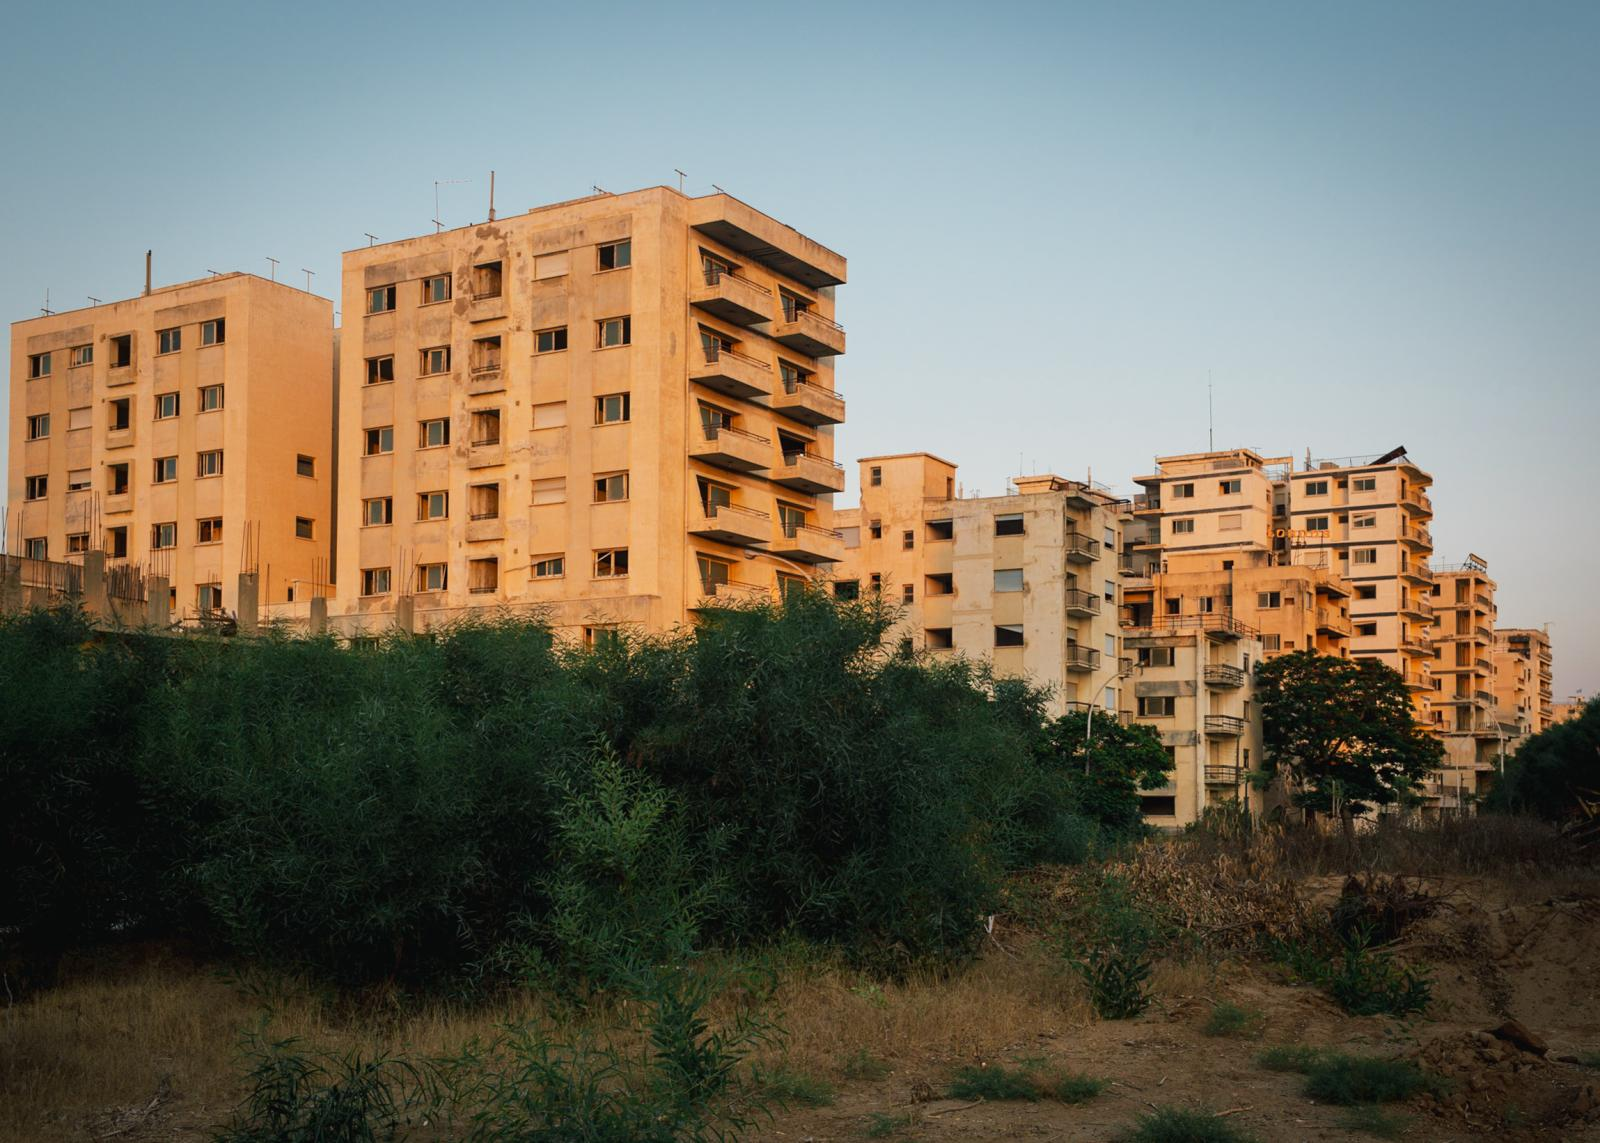 Abandoned apartment buildings on the outskirts of the ghost town.